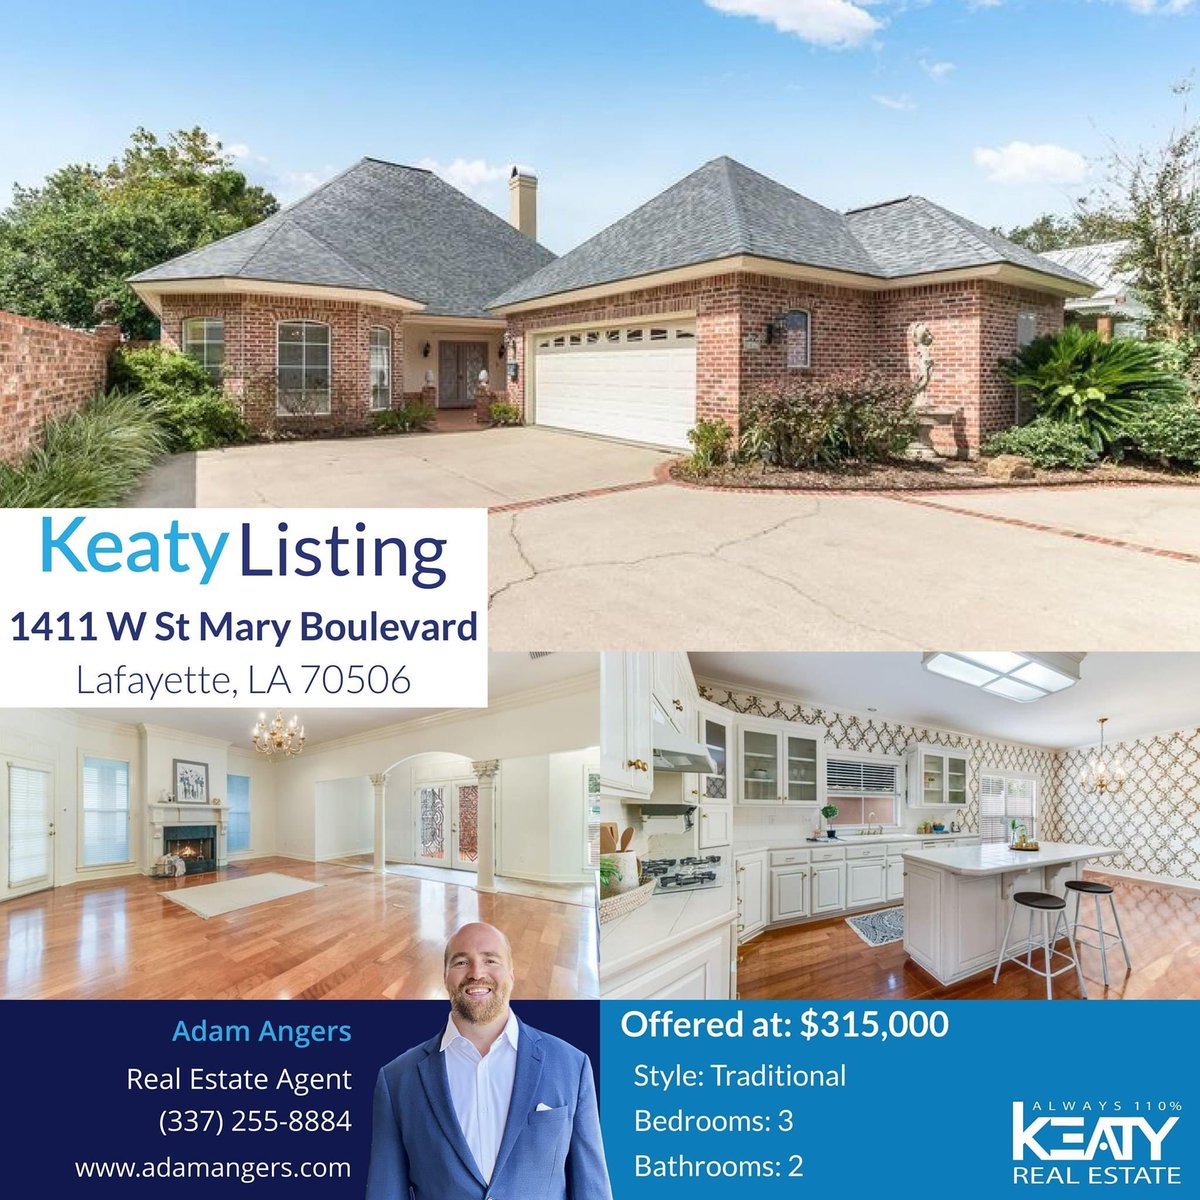 ✨ AMAZING KEATY LISTING! 🏠 1411 W St Mary Blvd 💸 listed at $315,000 🛏 3 🛁 3  #keatyrealestate #always110 #newlisting #realestate #househunting #dreamhome #forsale #realtor #houses #realestateagent #home #property #realtors